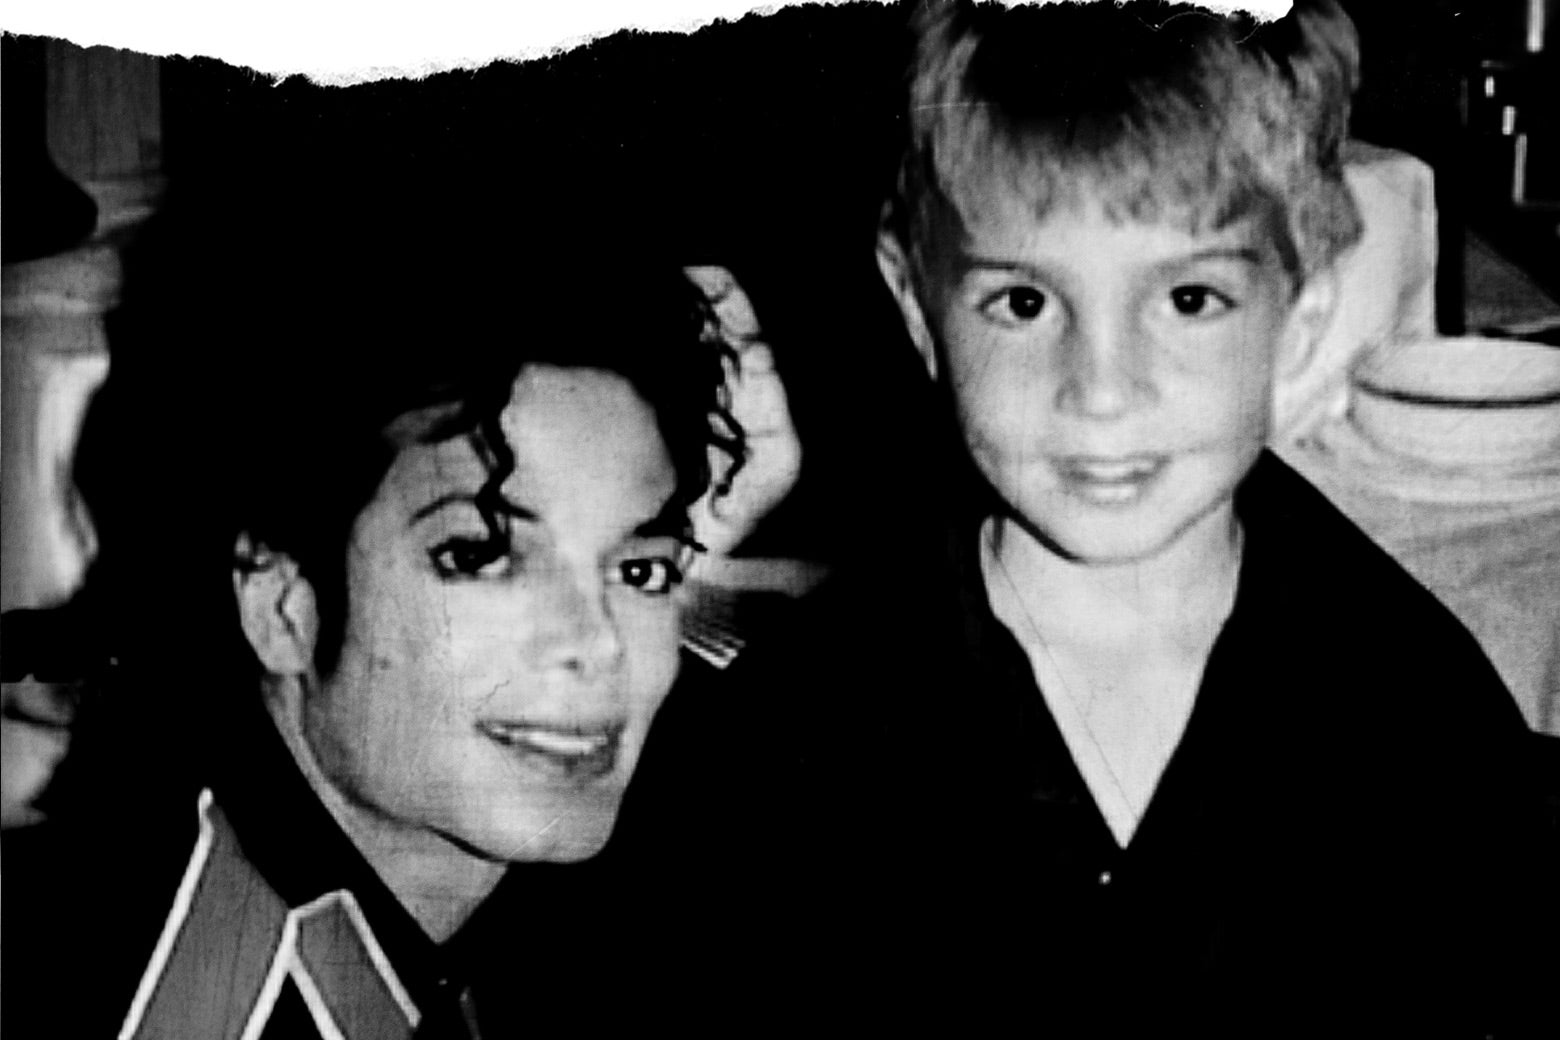 How Leaving Neverland Does a Disservice to Michael Jackson's Accusers